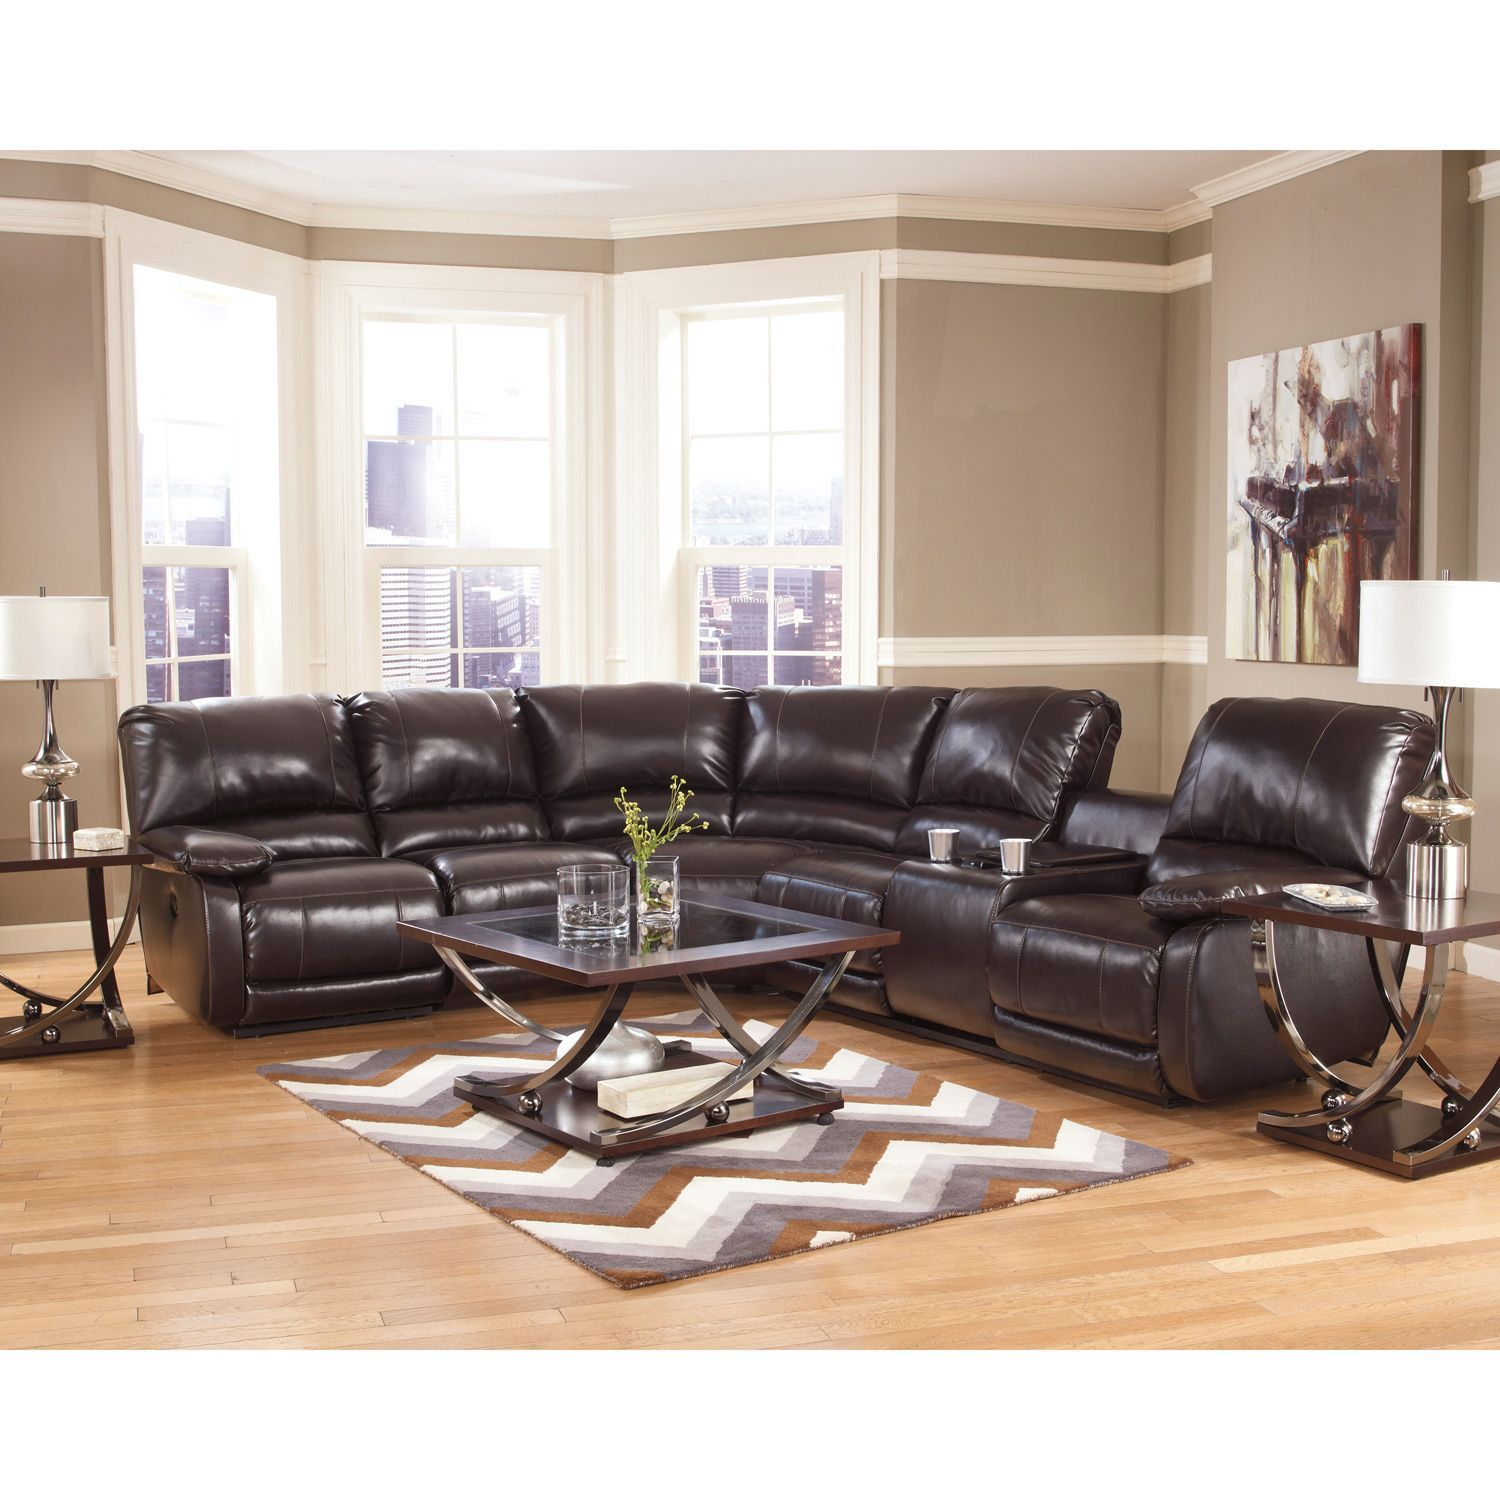 The capote sectional features dense foam padding and a design to give your home decor a boost of fashion forward style designed by ashley furniture